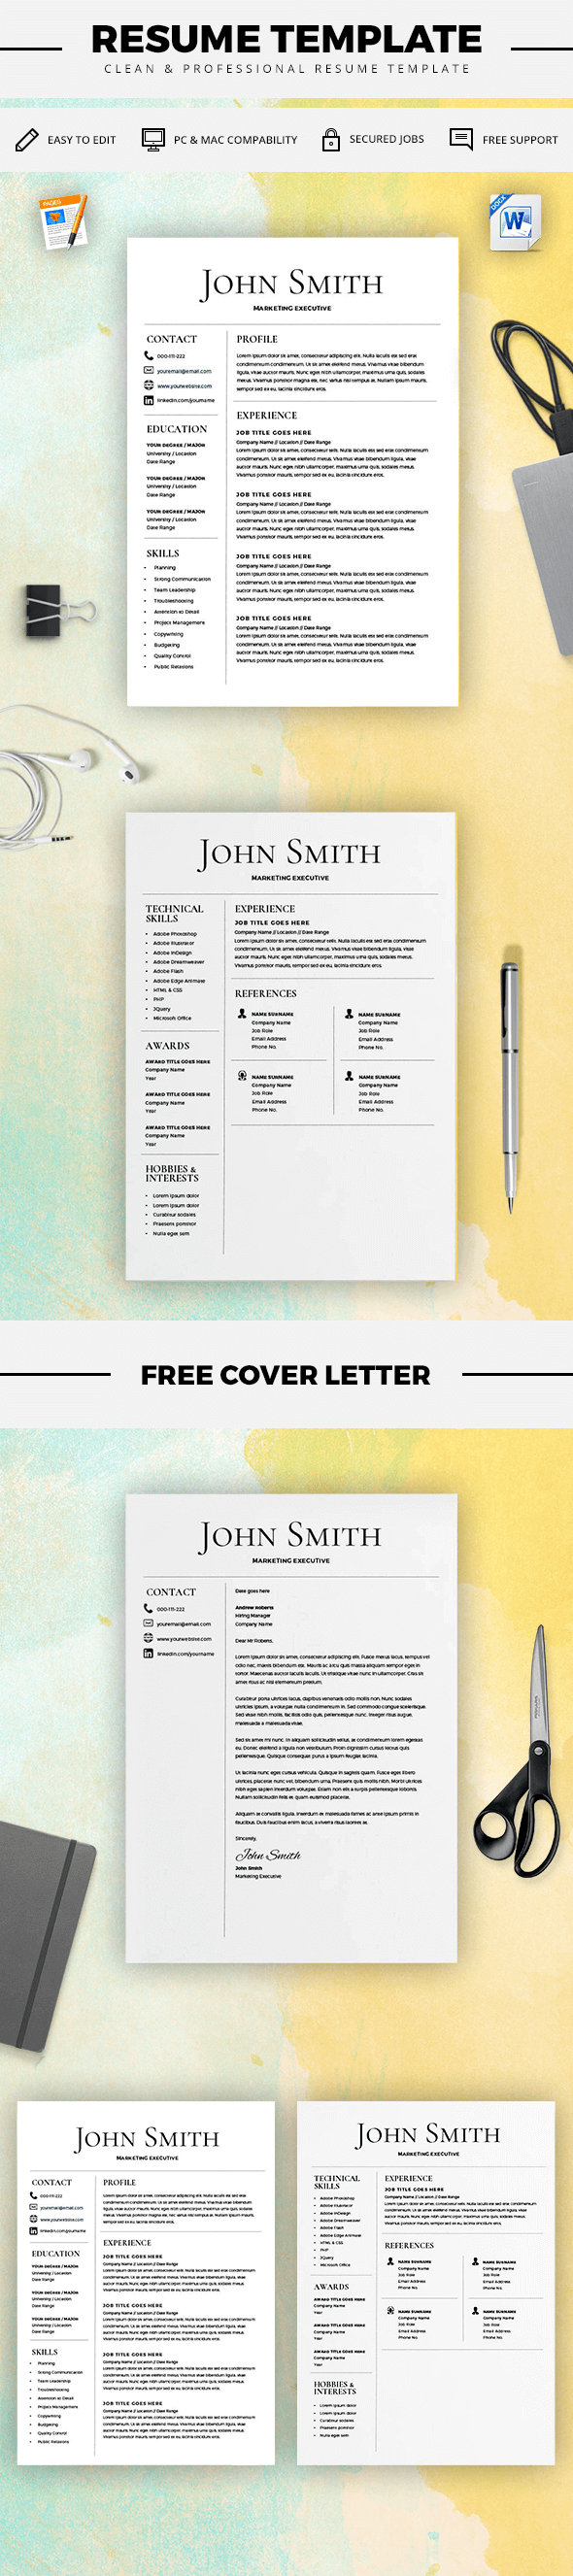 Resume Template  Cv Template With Cover Letter  Ms Word On Mac